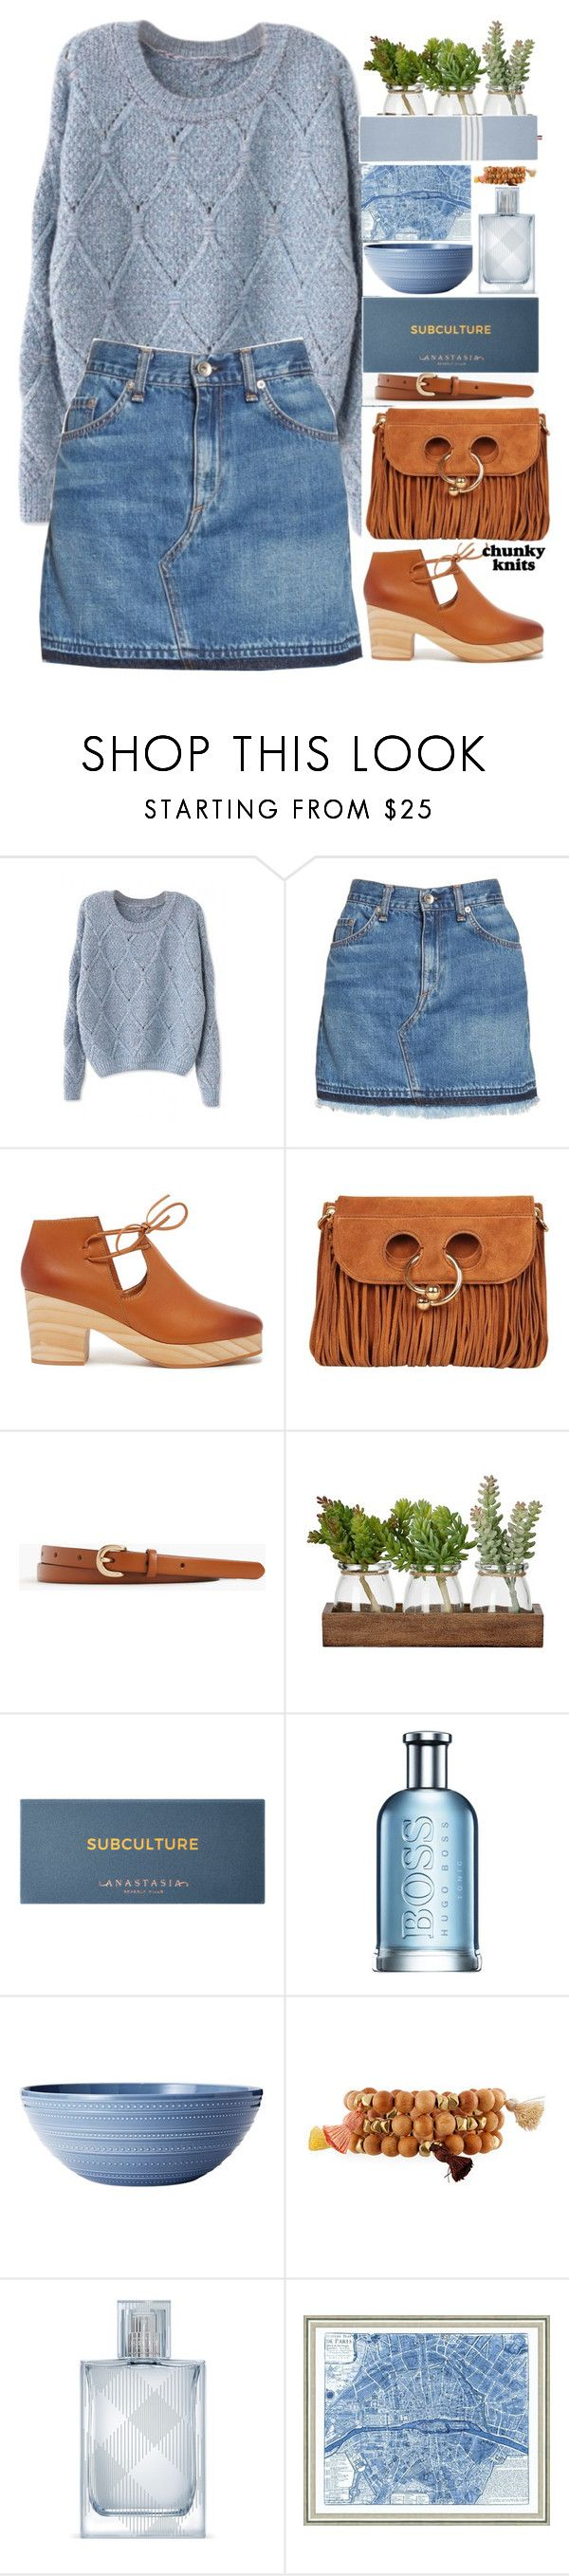 """1701"" by mykatty091 ❤ liked on Polyvore featuring rag & bone/JEAN, Kelsi Dagger Brooklyn, J.W. Anderson, J.Crew, Anastasia Beverly Hills, HUGO, Hipchik, Burberry, Vintage Print Gallery and Thom Browne"